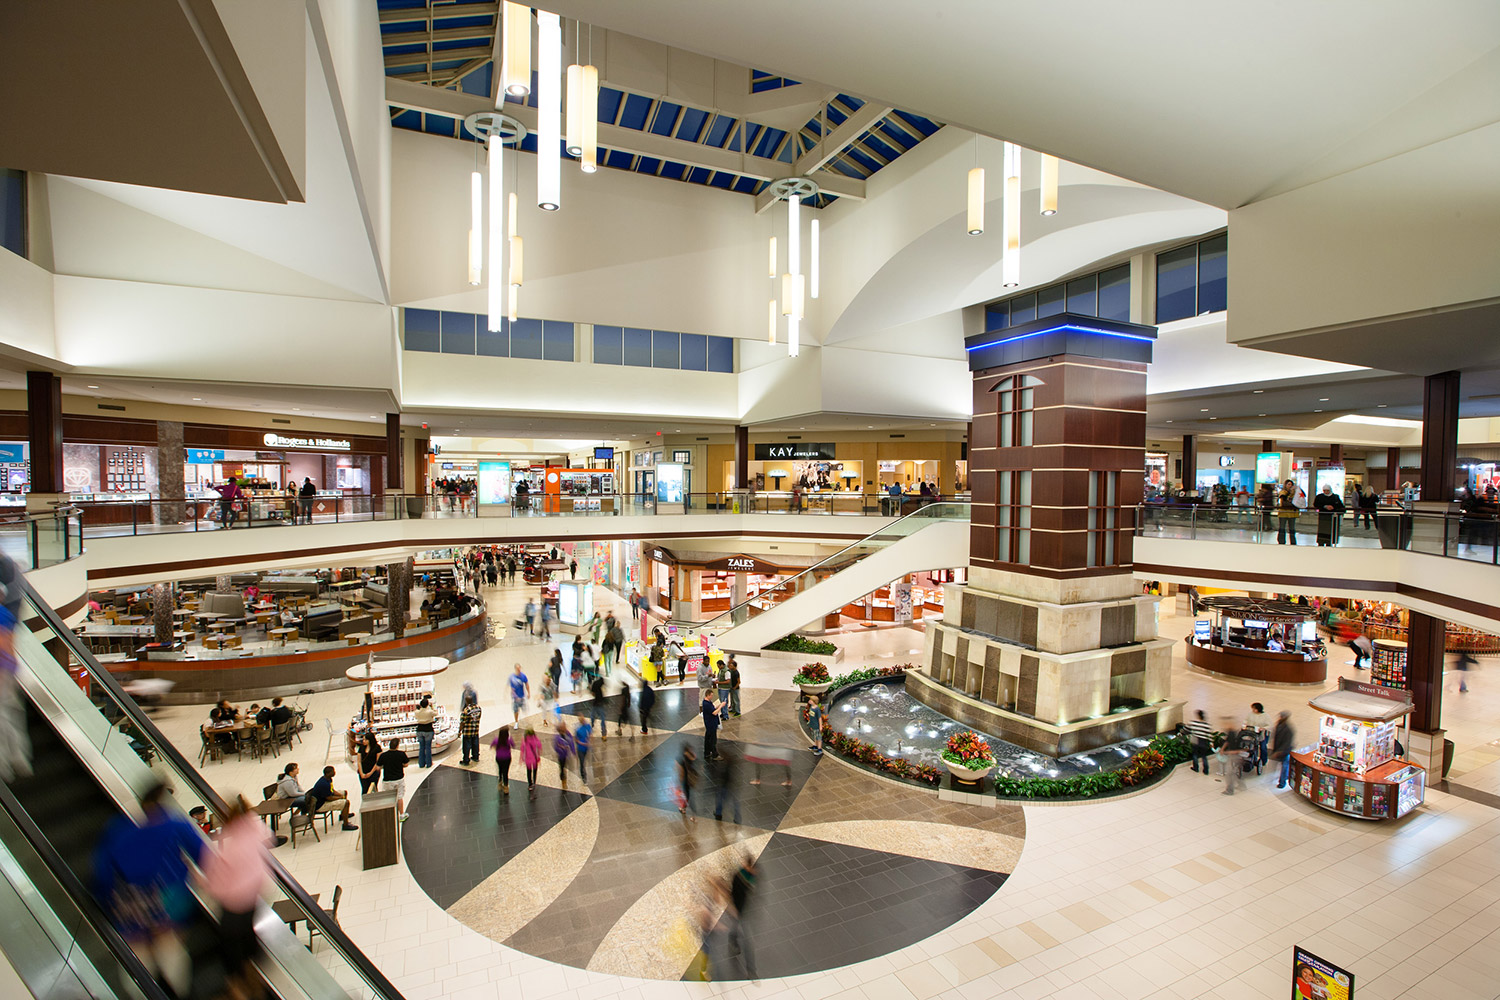 About Orland Square - A Shopping Center in Orland Park, IL ...